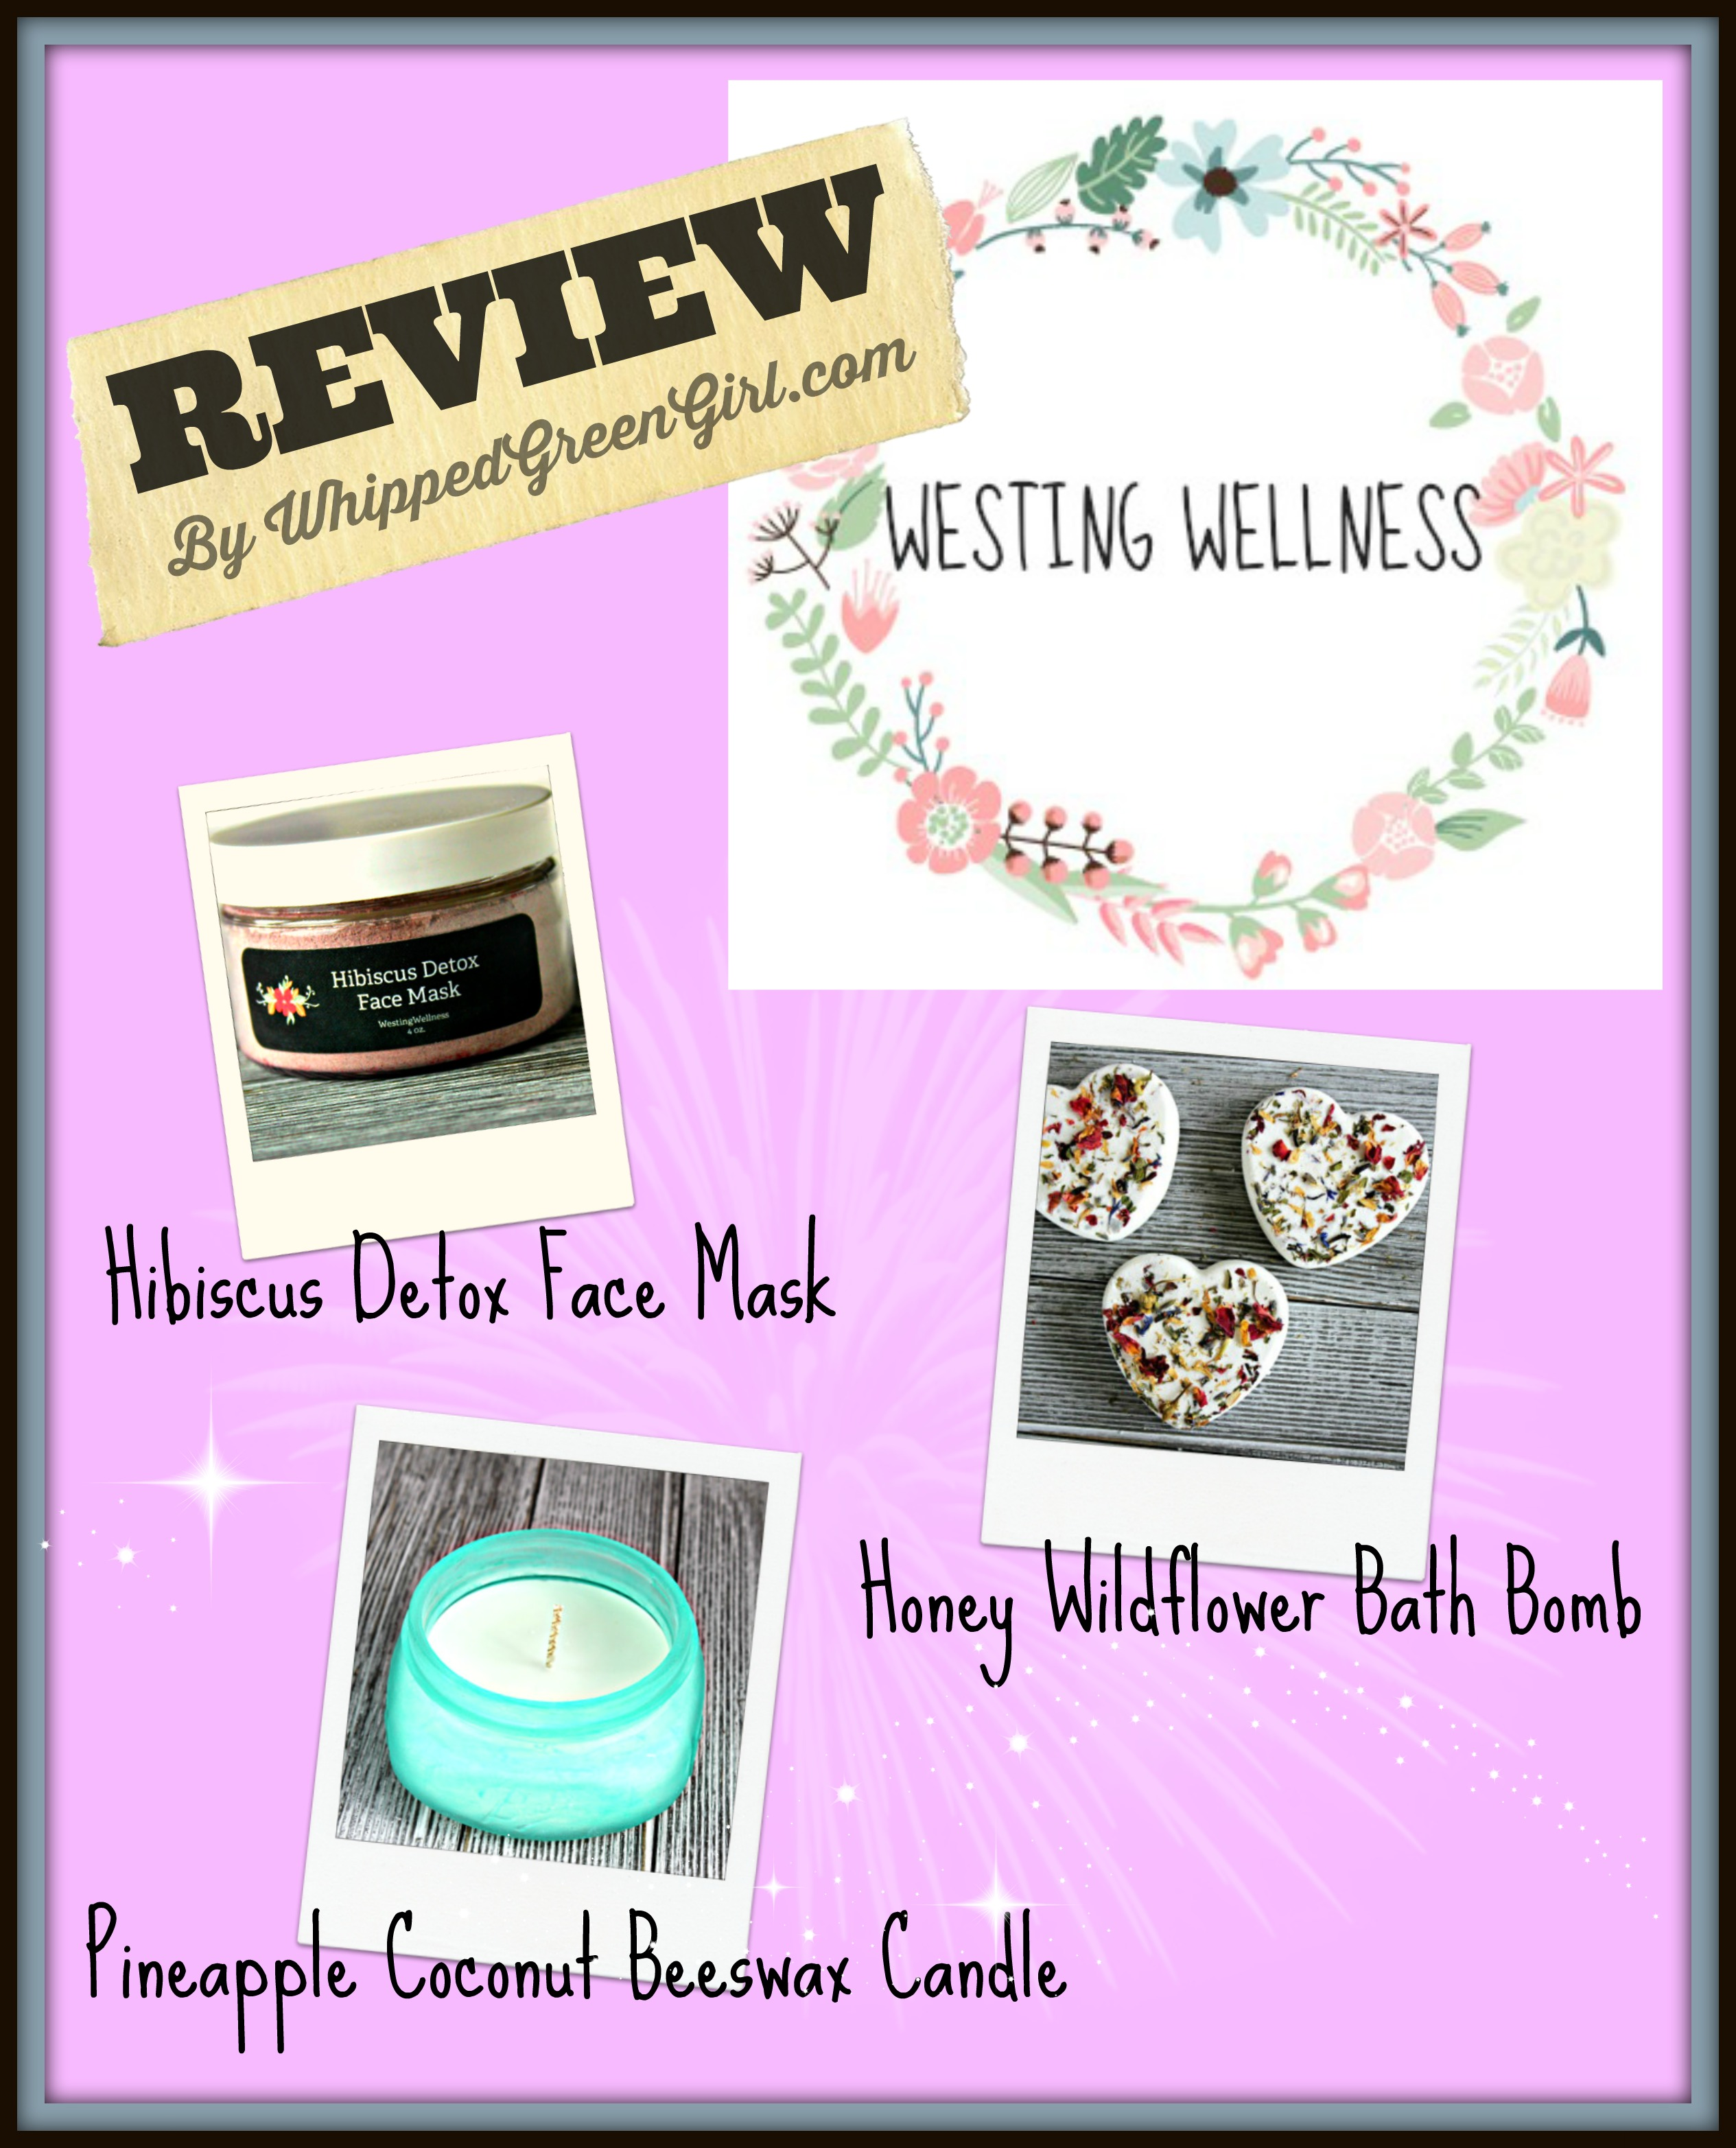 Westingwellness product review